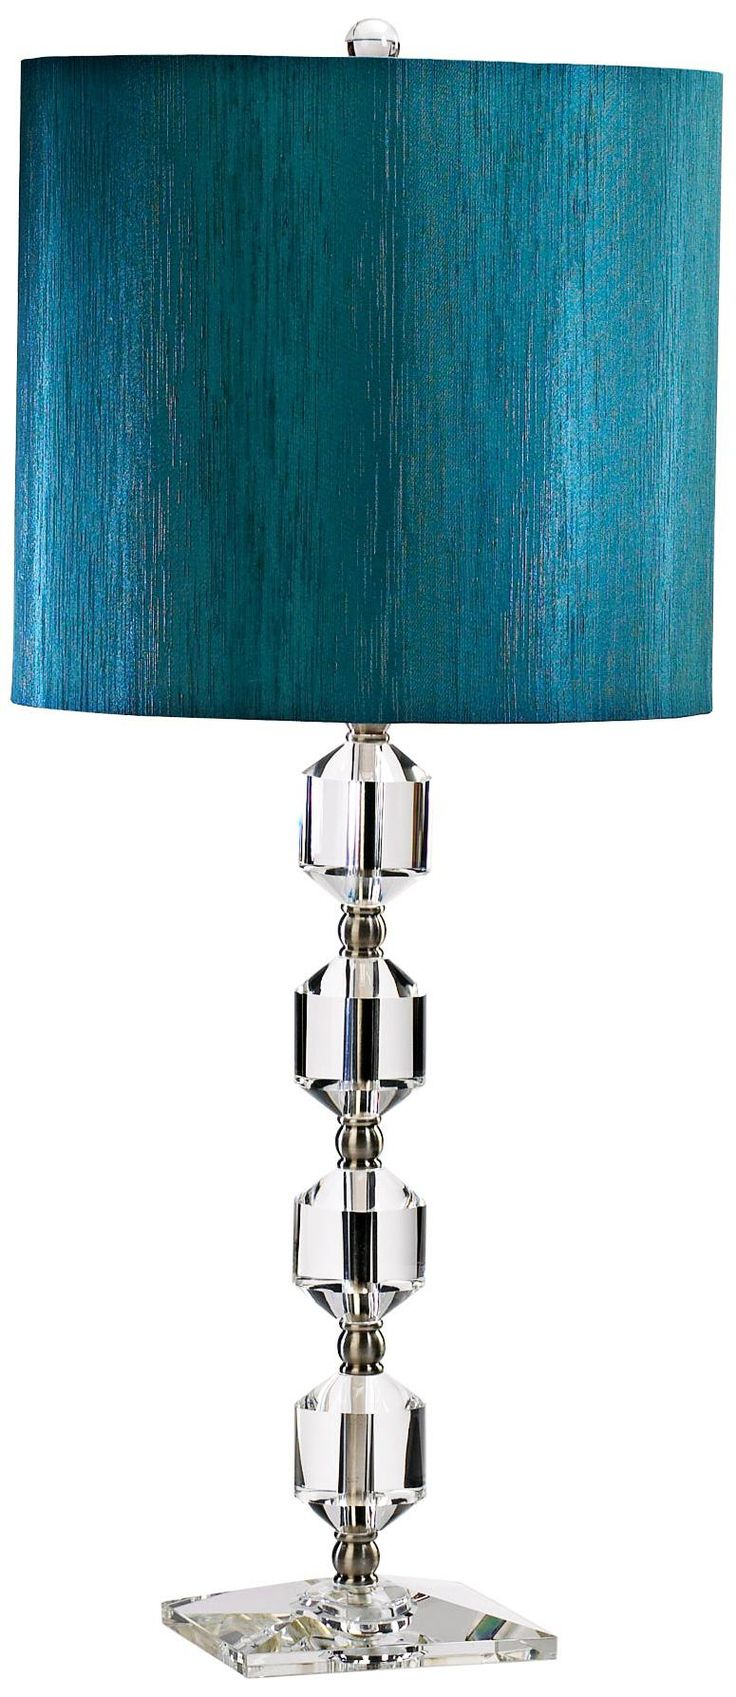 Wh wholesale vintage lead crystal table lamp buy cheap - Hanover Teal Shade Clear Crystal Table Lamp Lampsplus Com